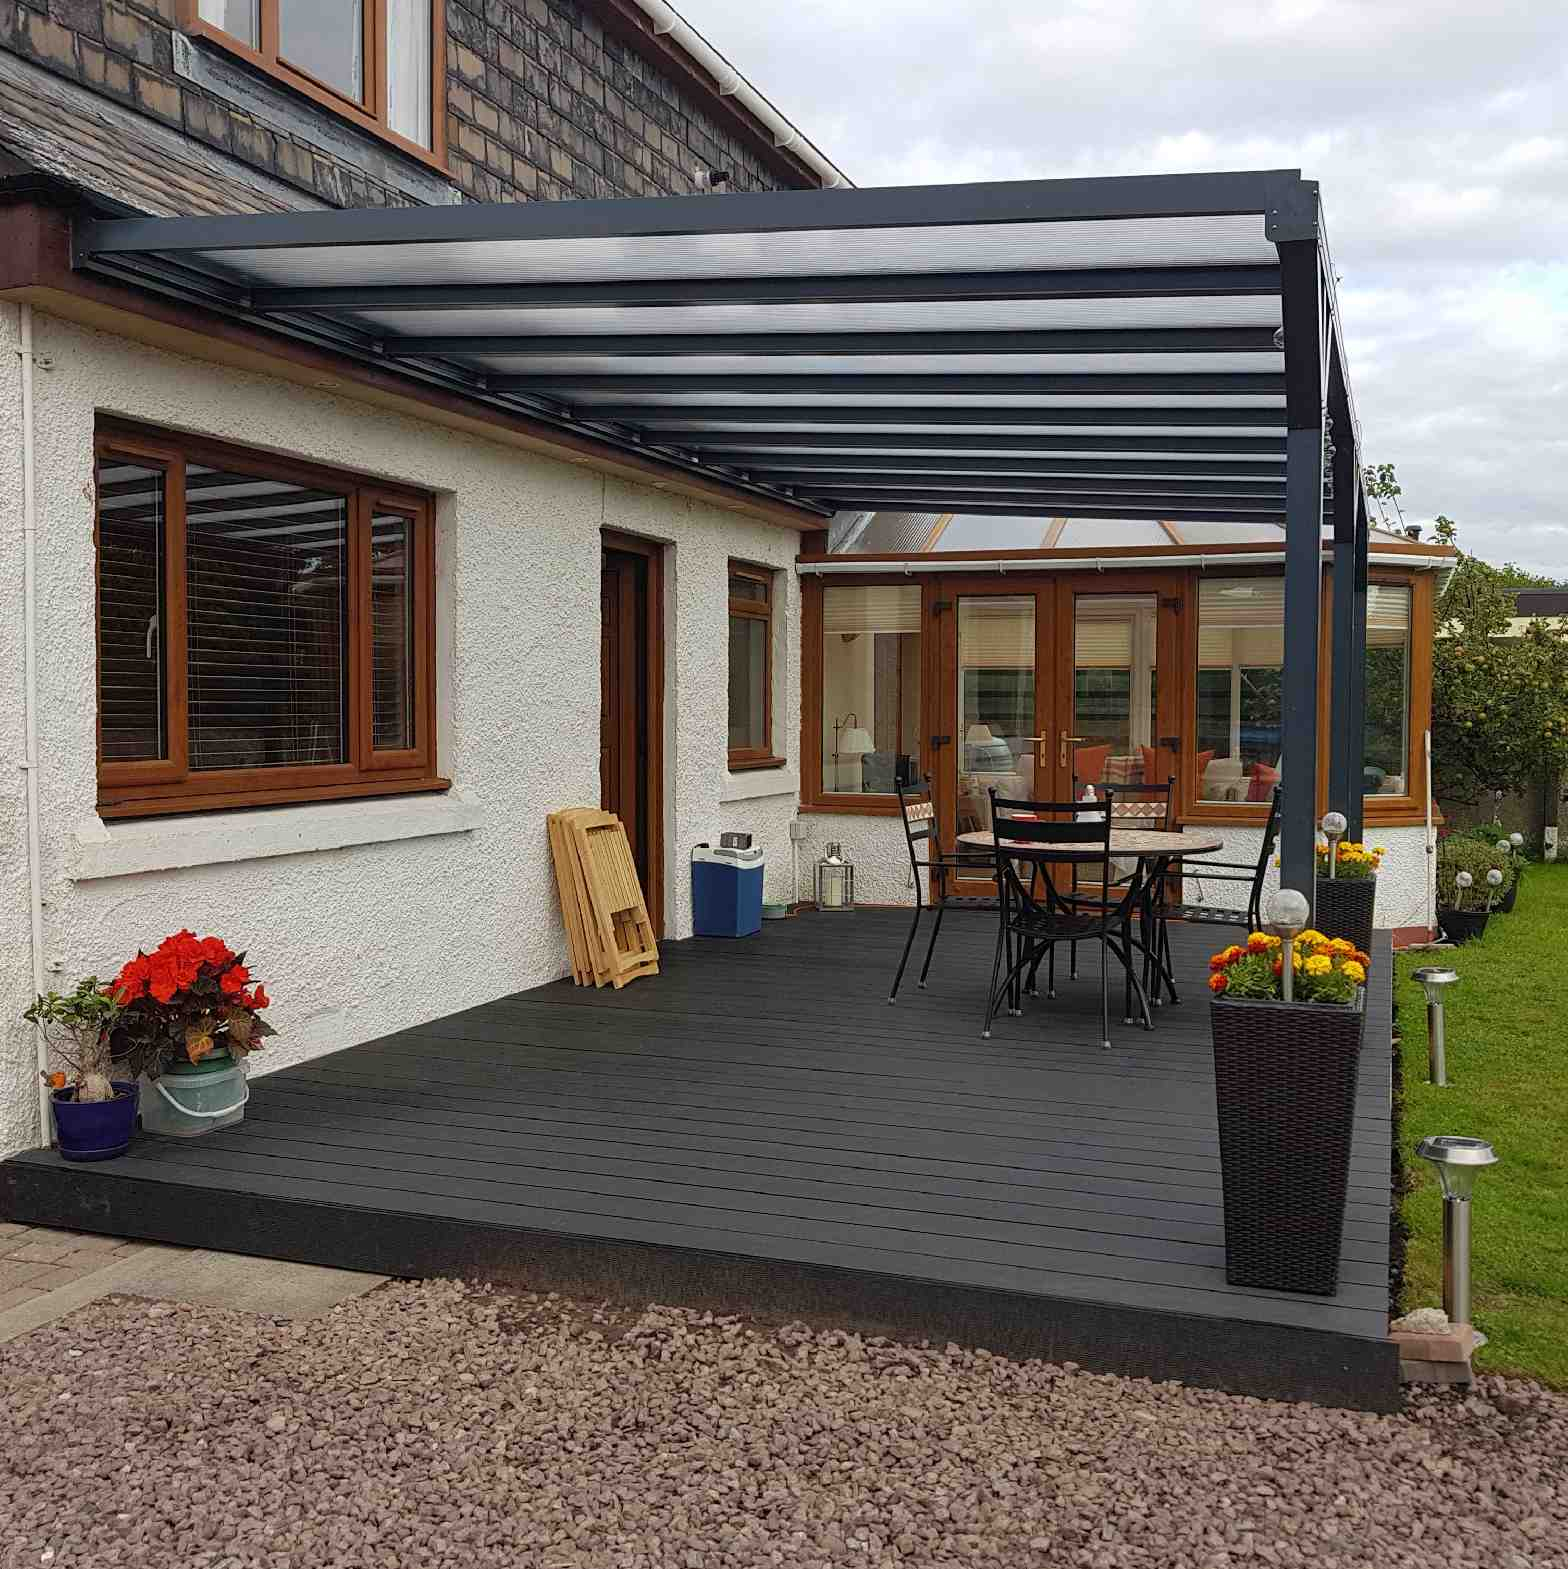 Buy Omega Verandah, Anthracite Grey, 6mm Glass Clear Plate Polycarbonate Glazing - 7.7m (W) x 2.5m (P), (4) Supporting Posts online today